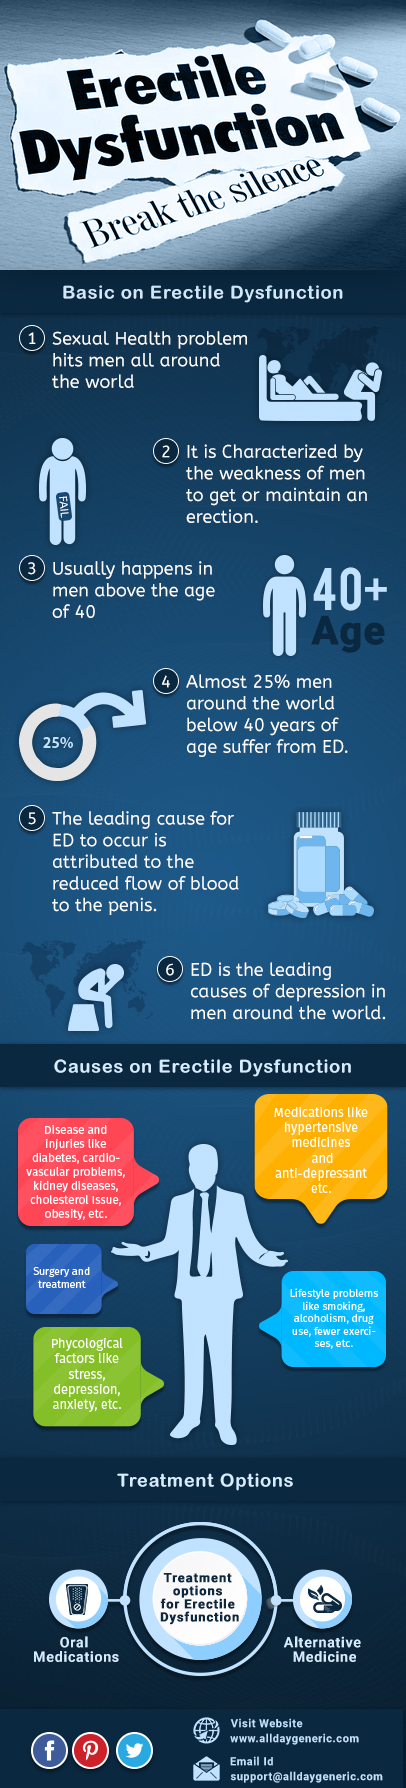 Information About Erectile Dysfunction